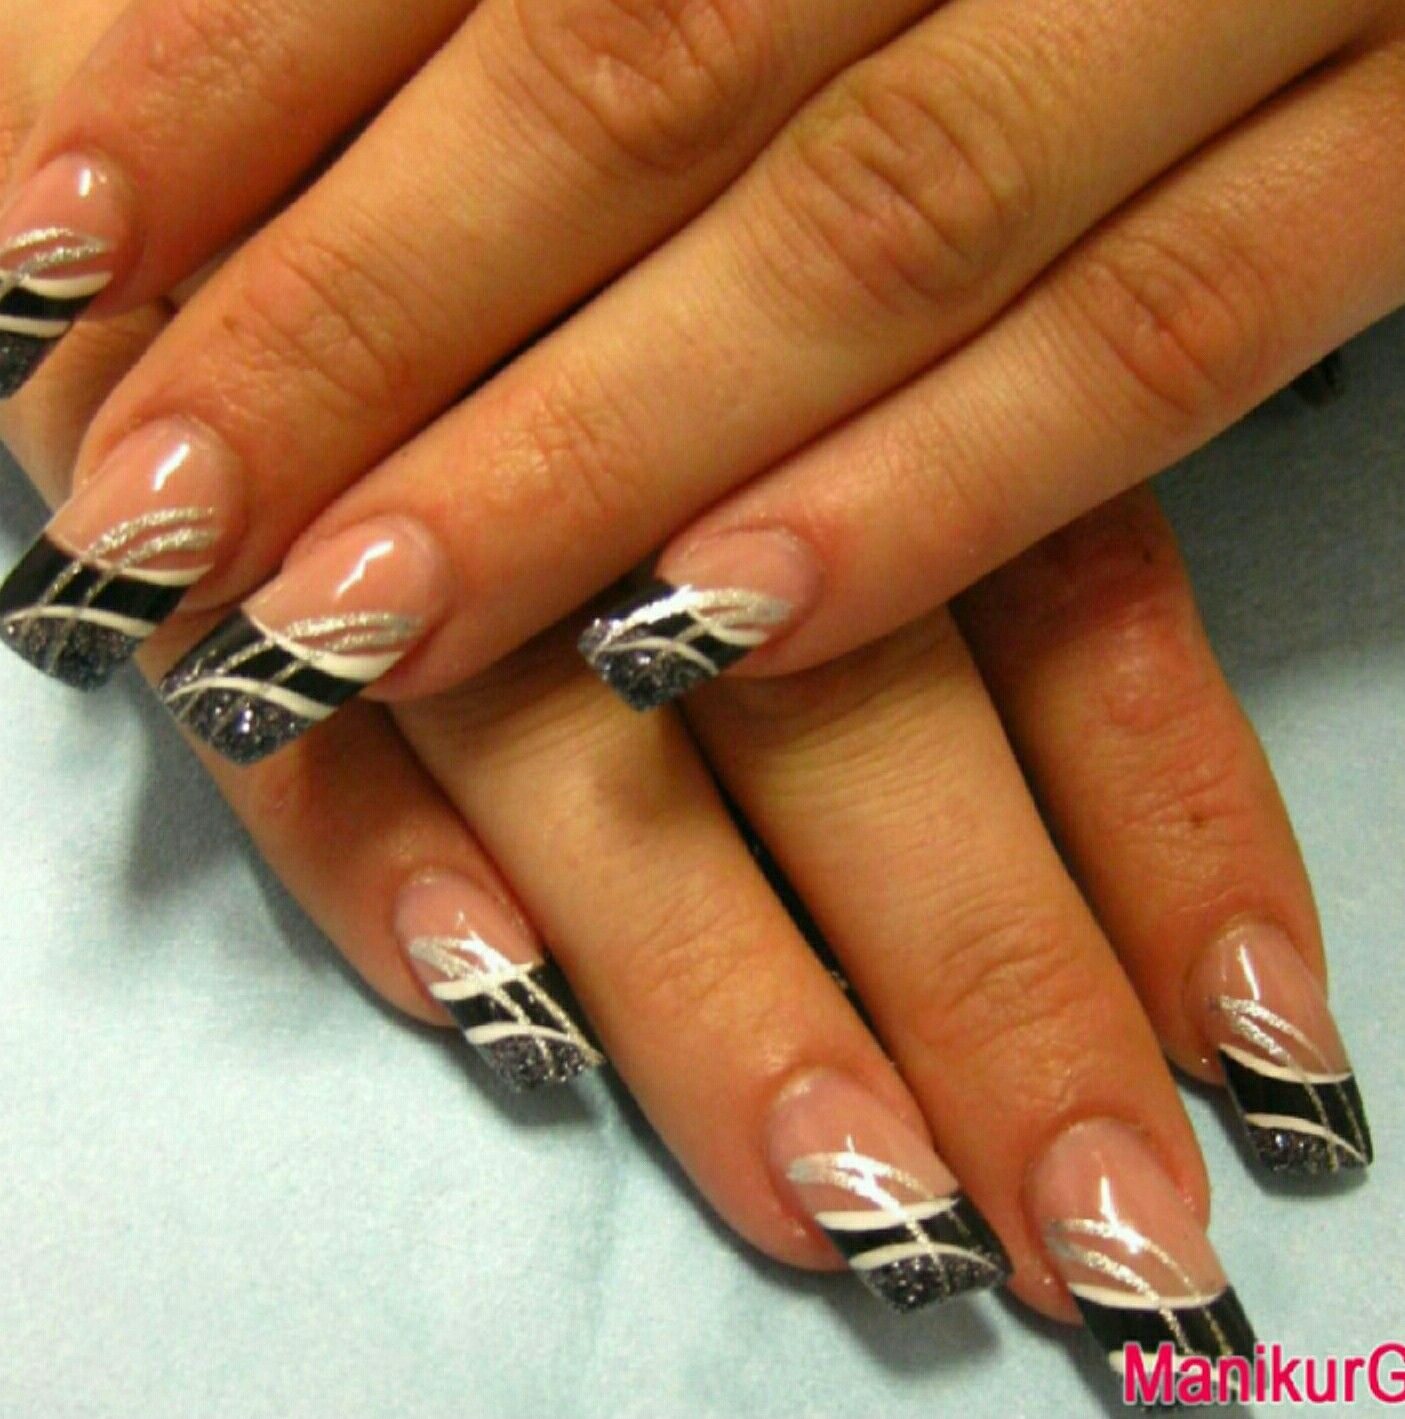 Pin by joanie roberge on ongles pinterest gorgeous nails solar